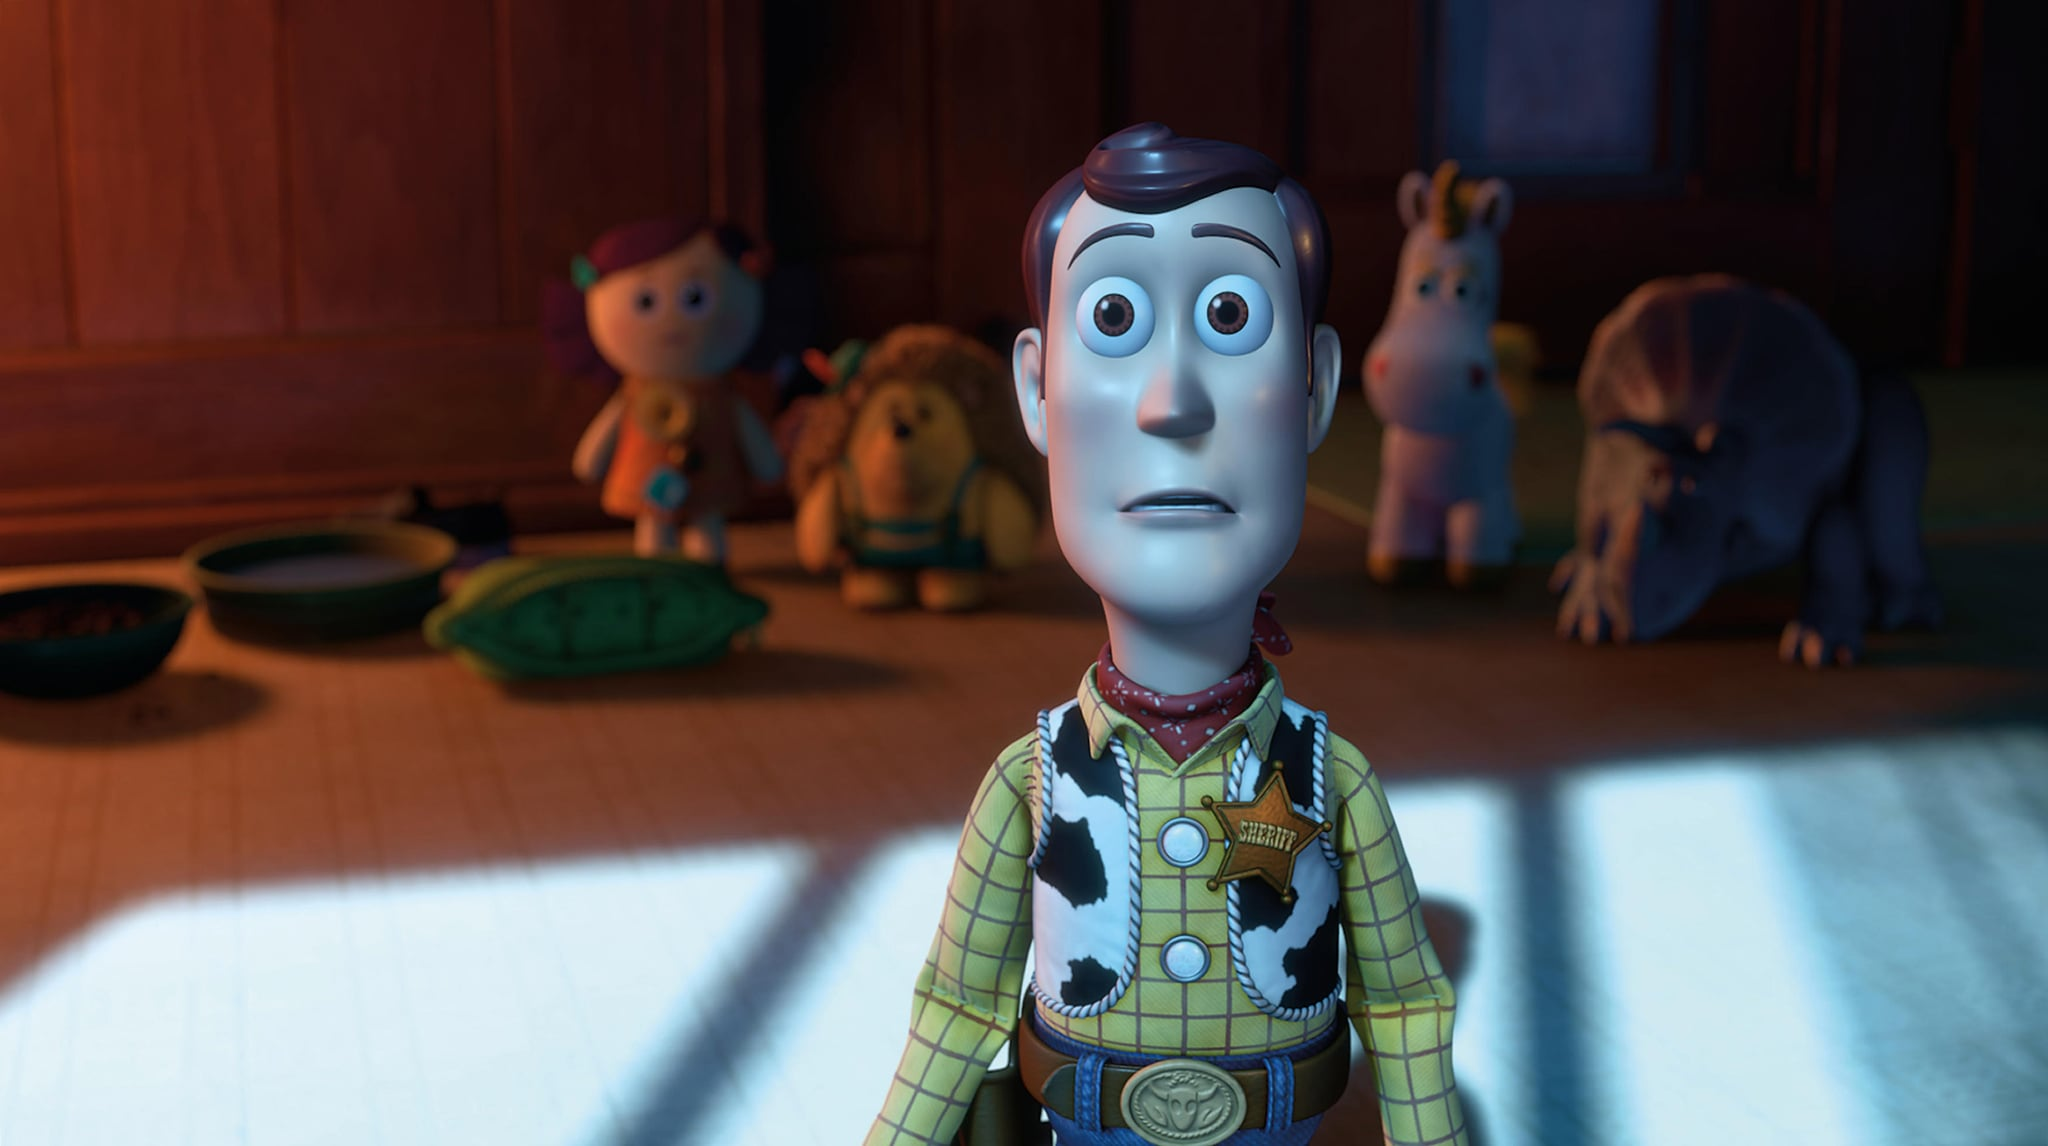 TOY STORY 3, front: Woody (voice: Tom Hanks), 2010. Buena Vista Pictures/courtesy Everett Collection